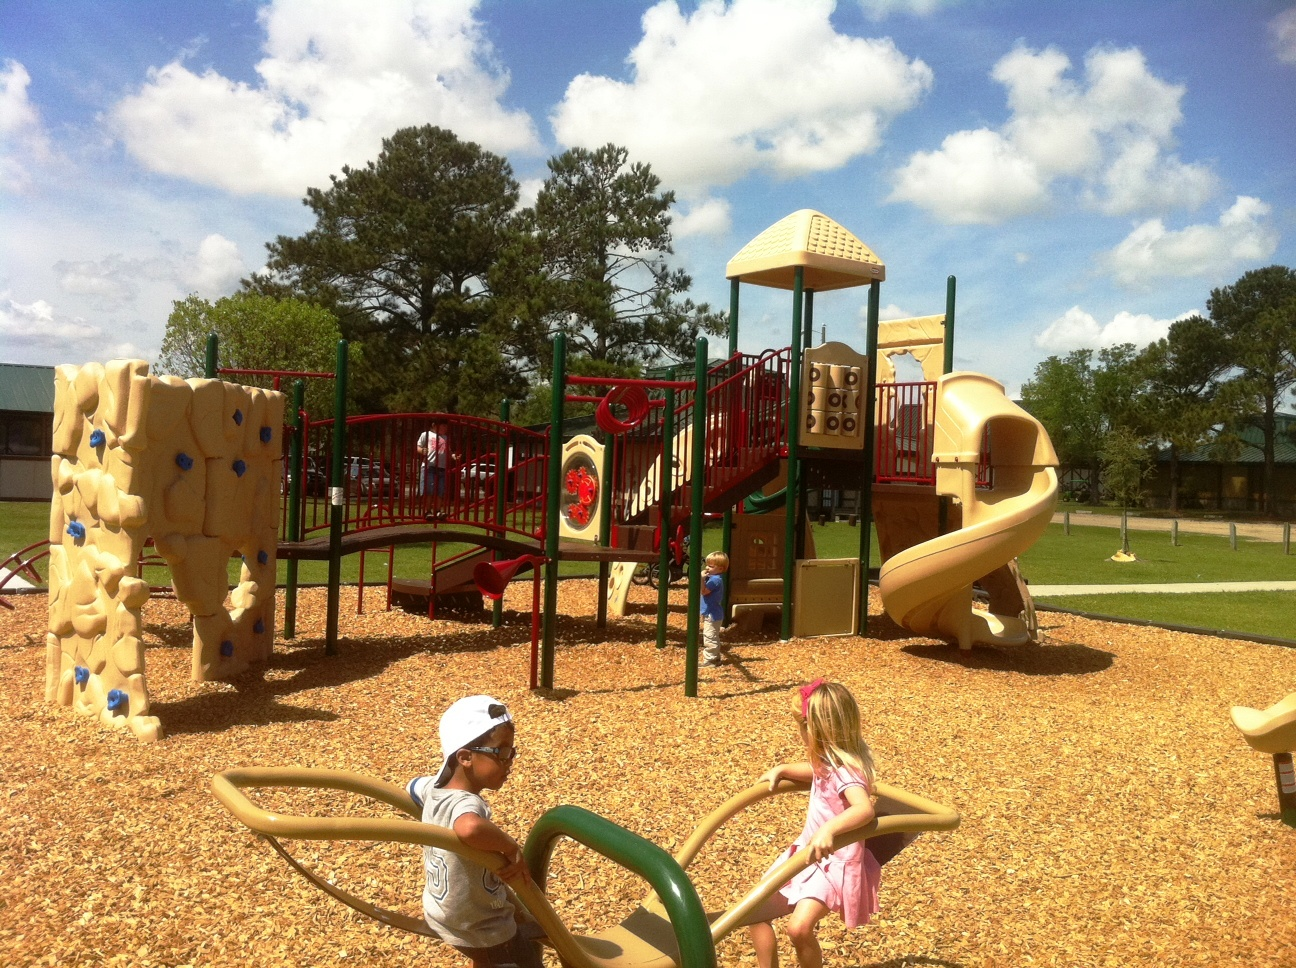 Newly renovated Lake Mayer playground three new climbing structures complete with climbing walls, tunnels; plus new swing sets, new baby swing sets, new mulch, new swivel seat, new twirling toy & oh-so-modern sleek see-saw!